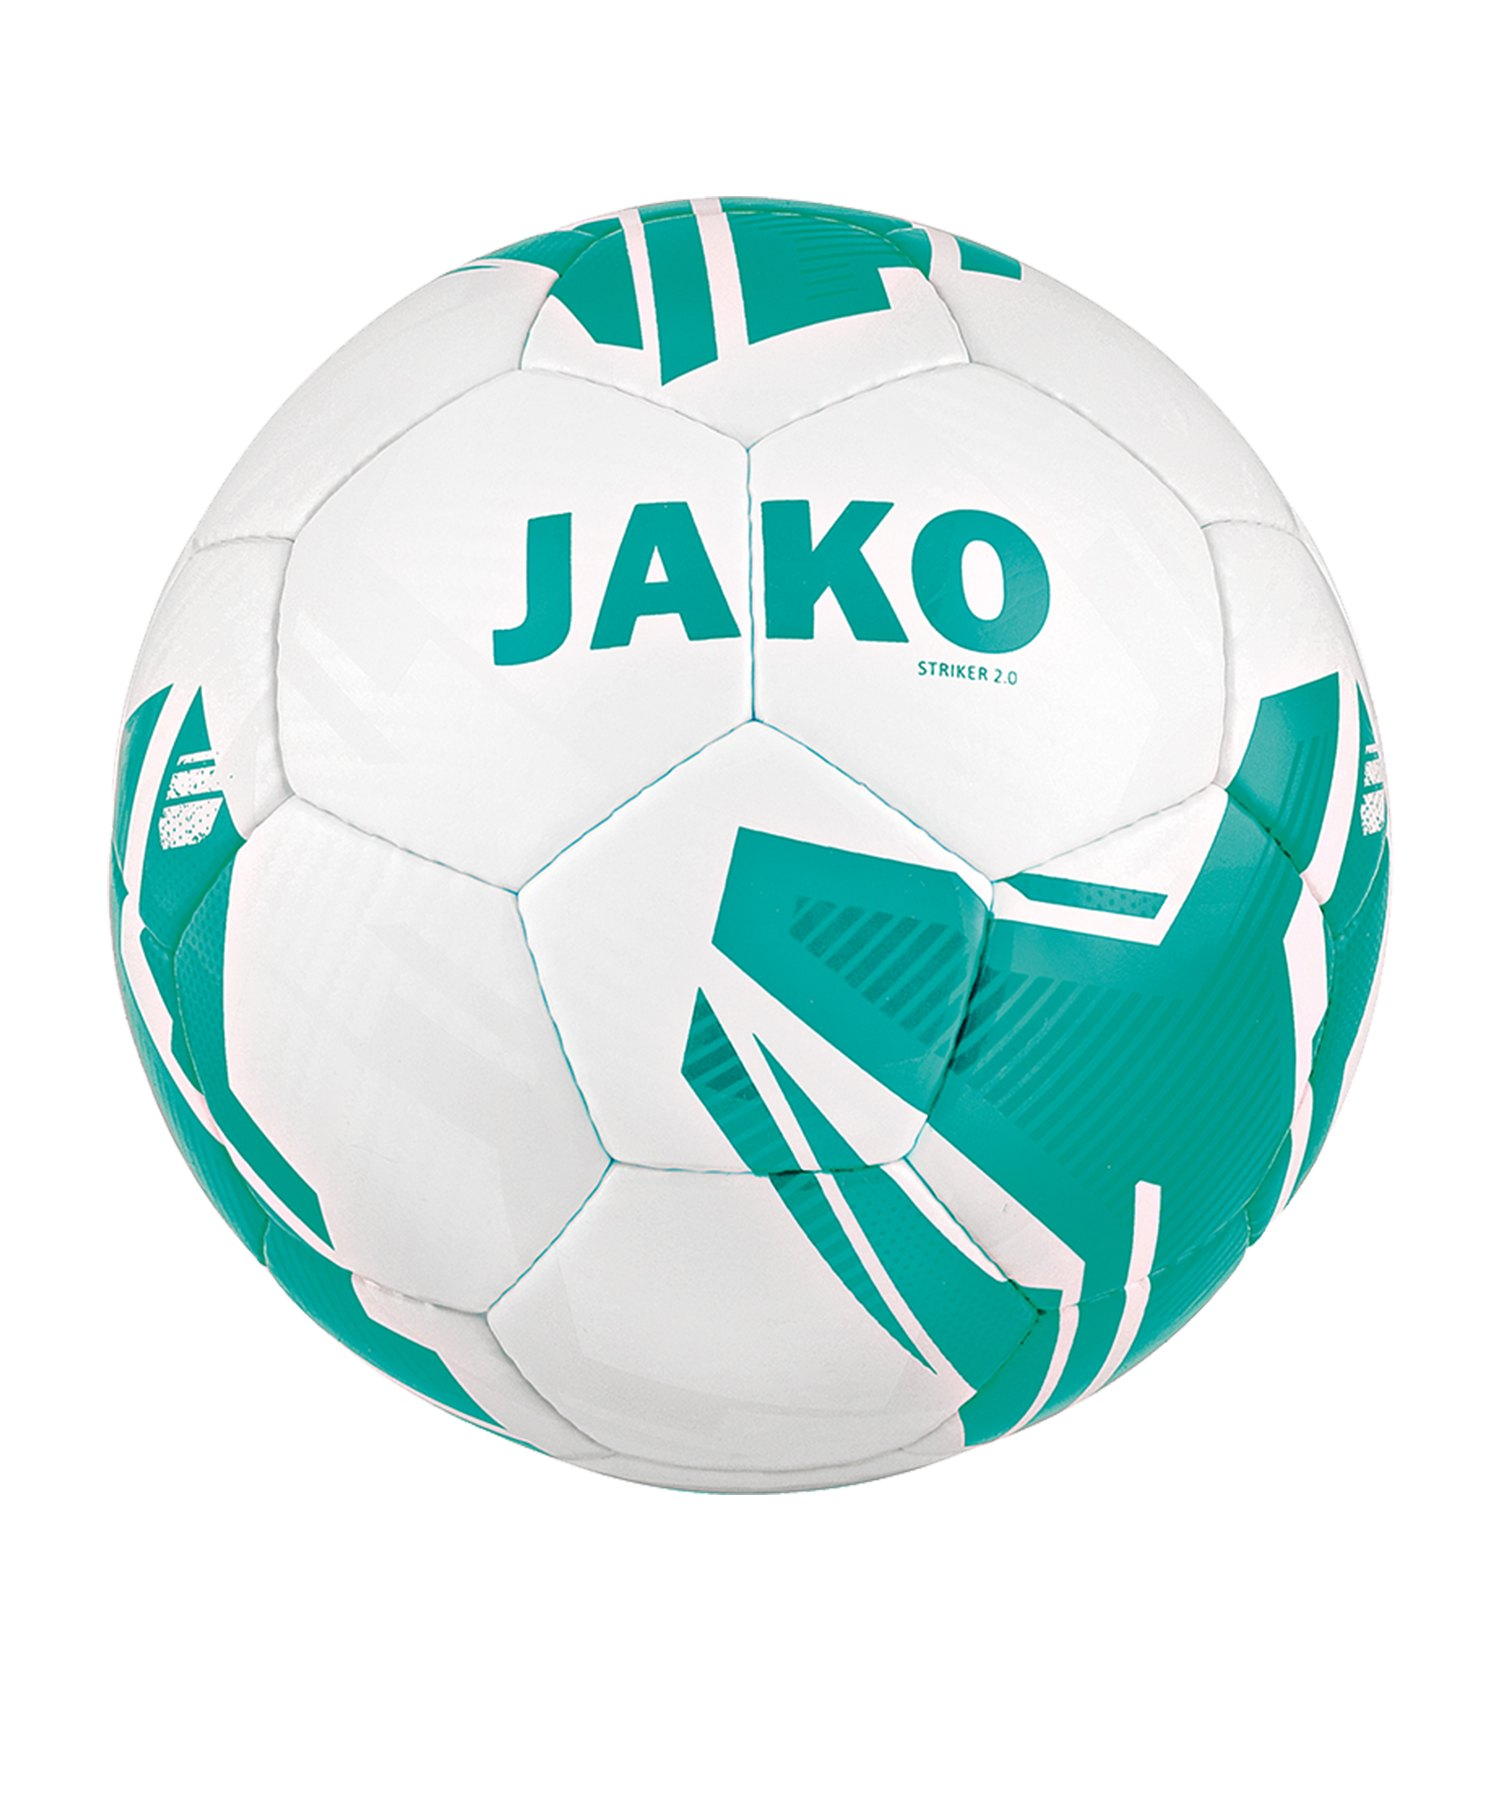 Jako Striker 2.0 Lightball MS 350 Gramm Gr. 5 F04 - Blau